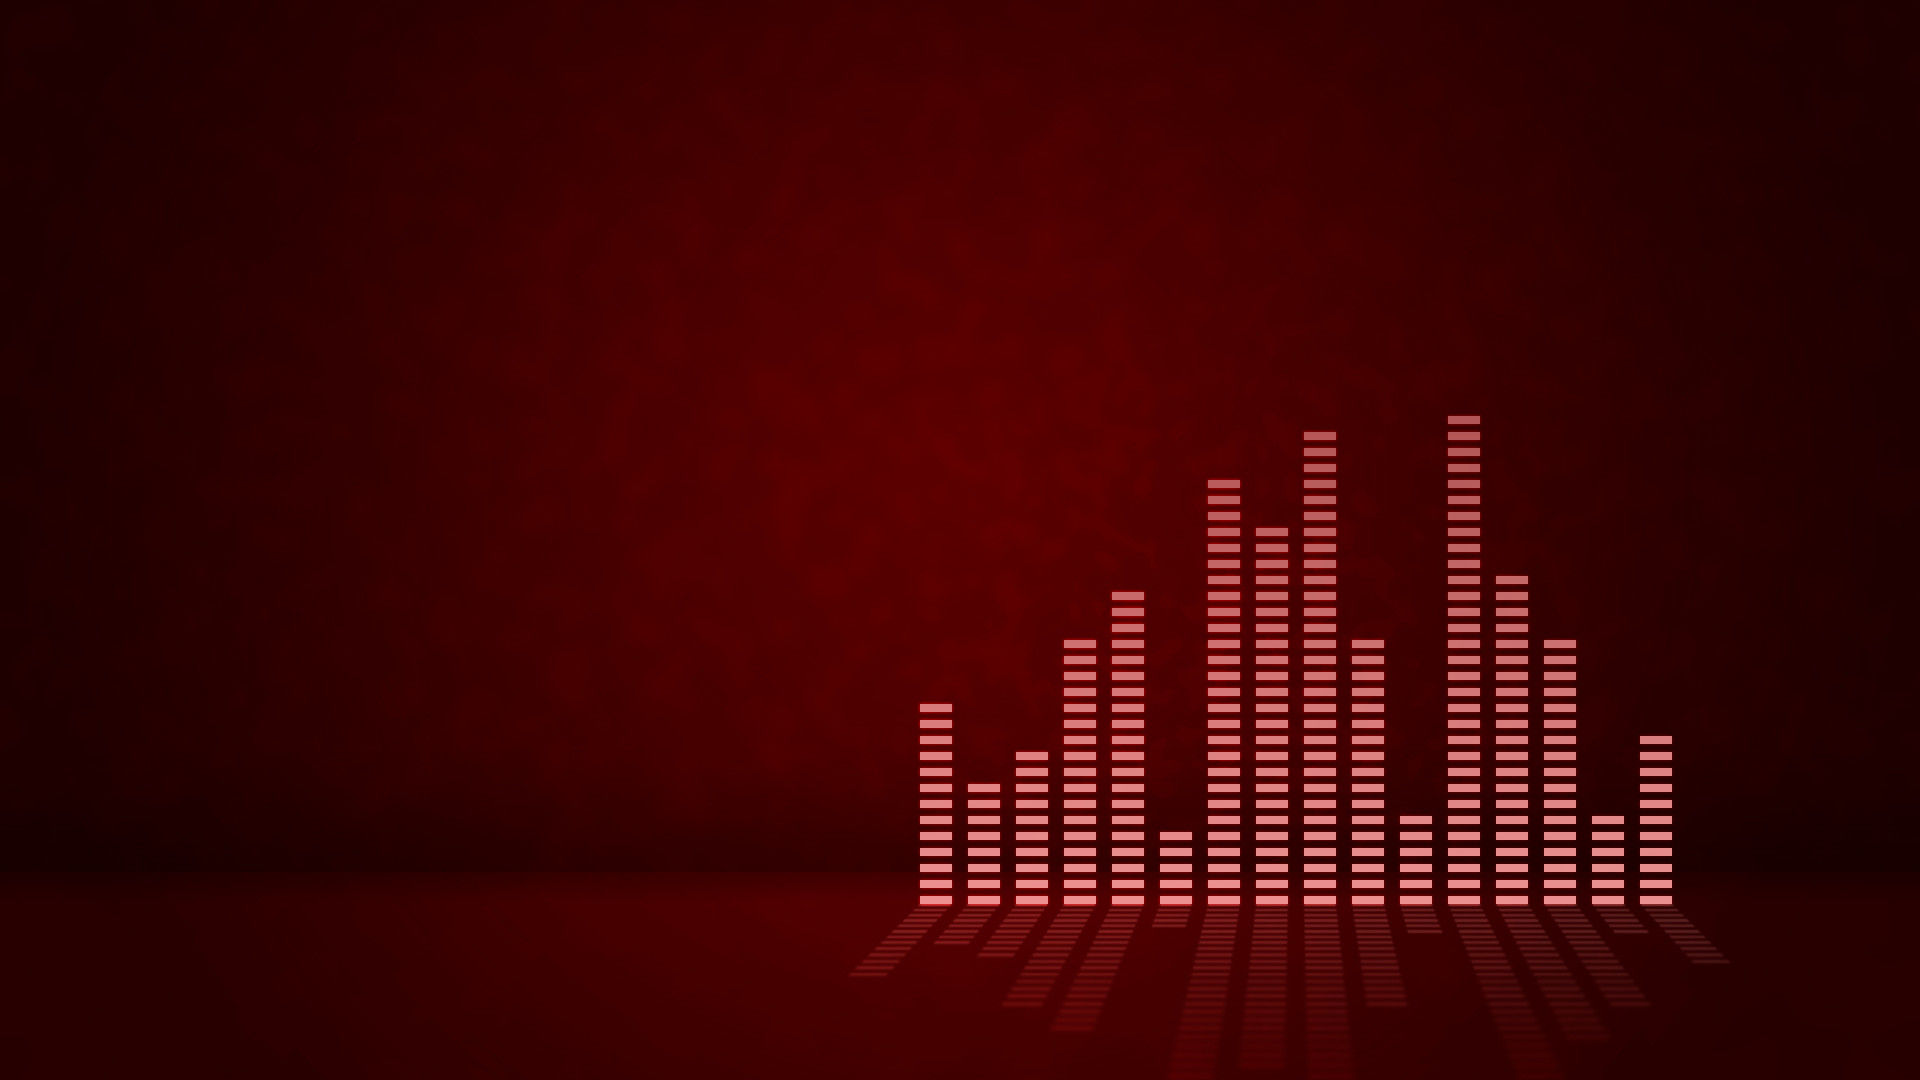 Music Sound Waves Live Wallpaper 74 Images